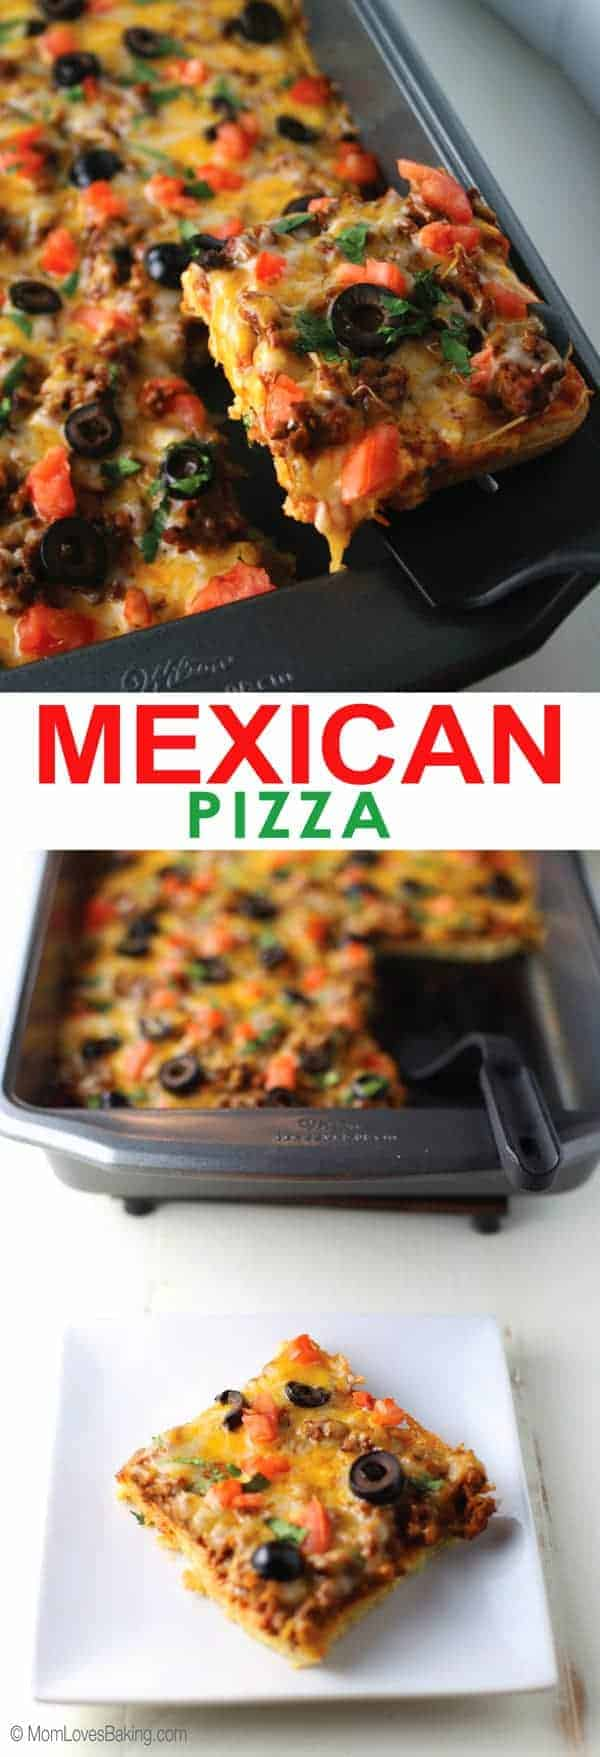 Low Carb Mexican Pizza